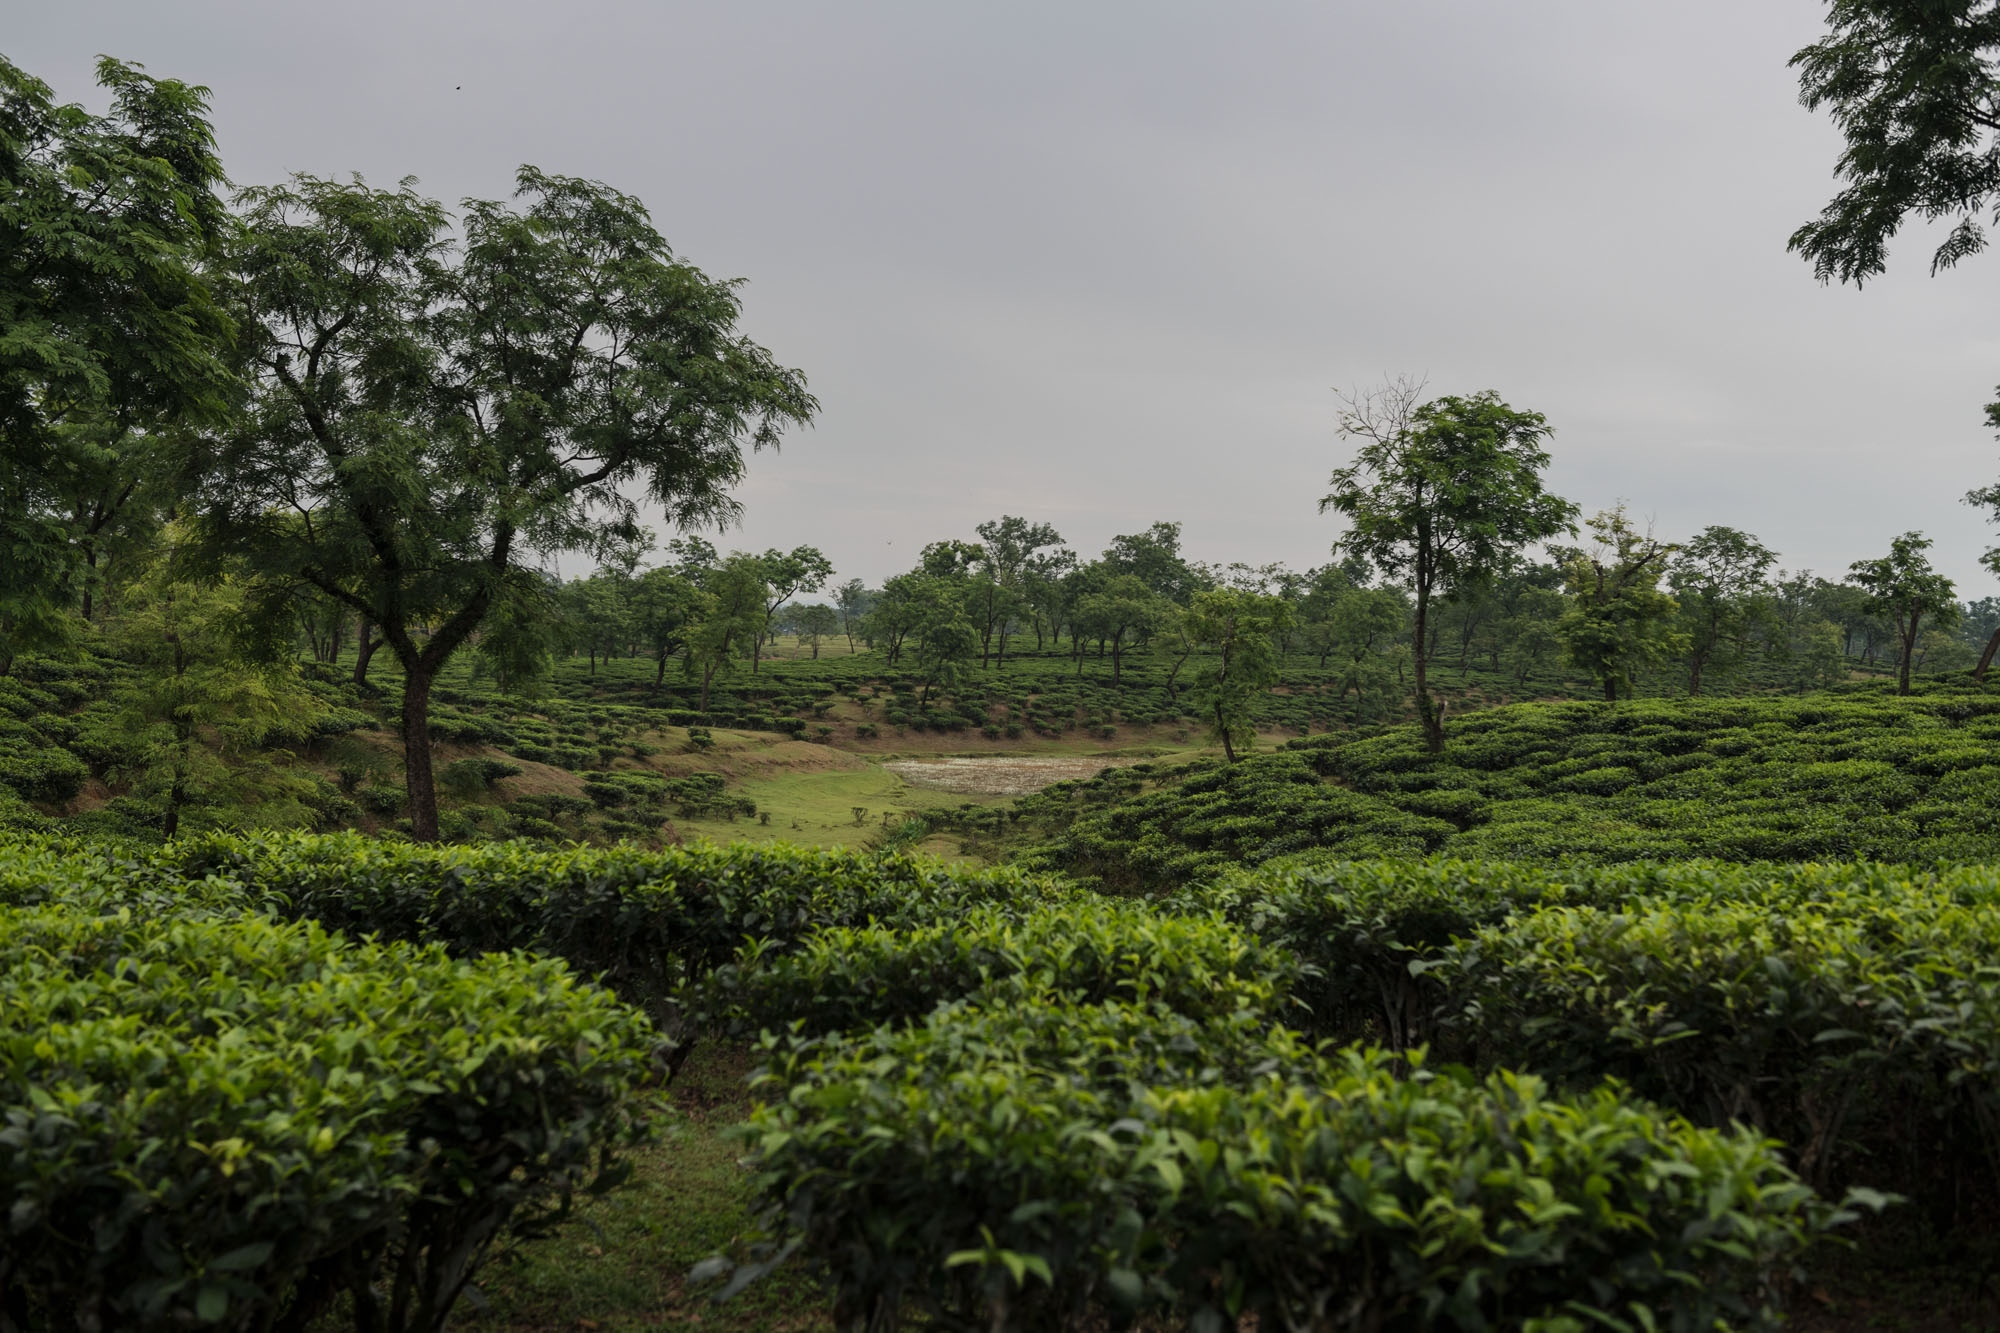 A tea plantation outside Silchar, Assam, India.